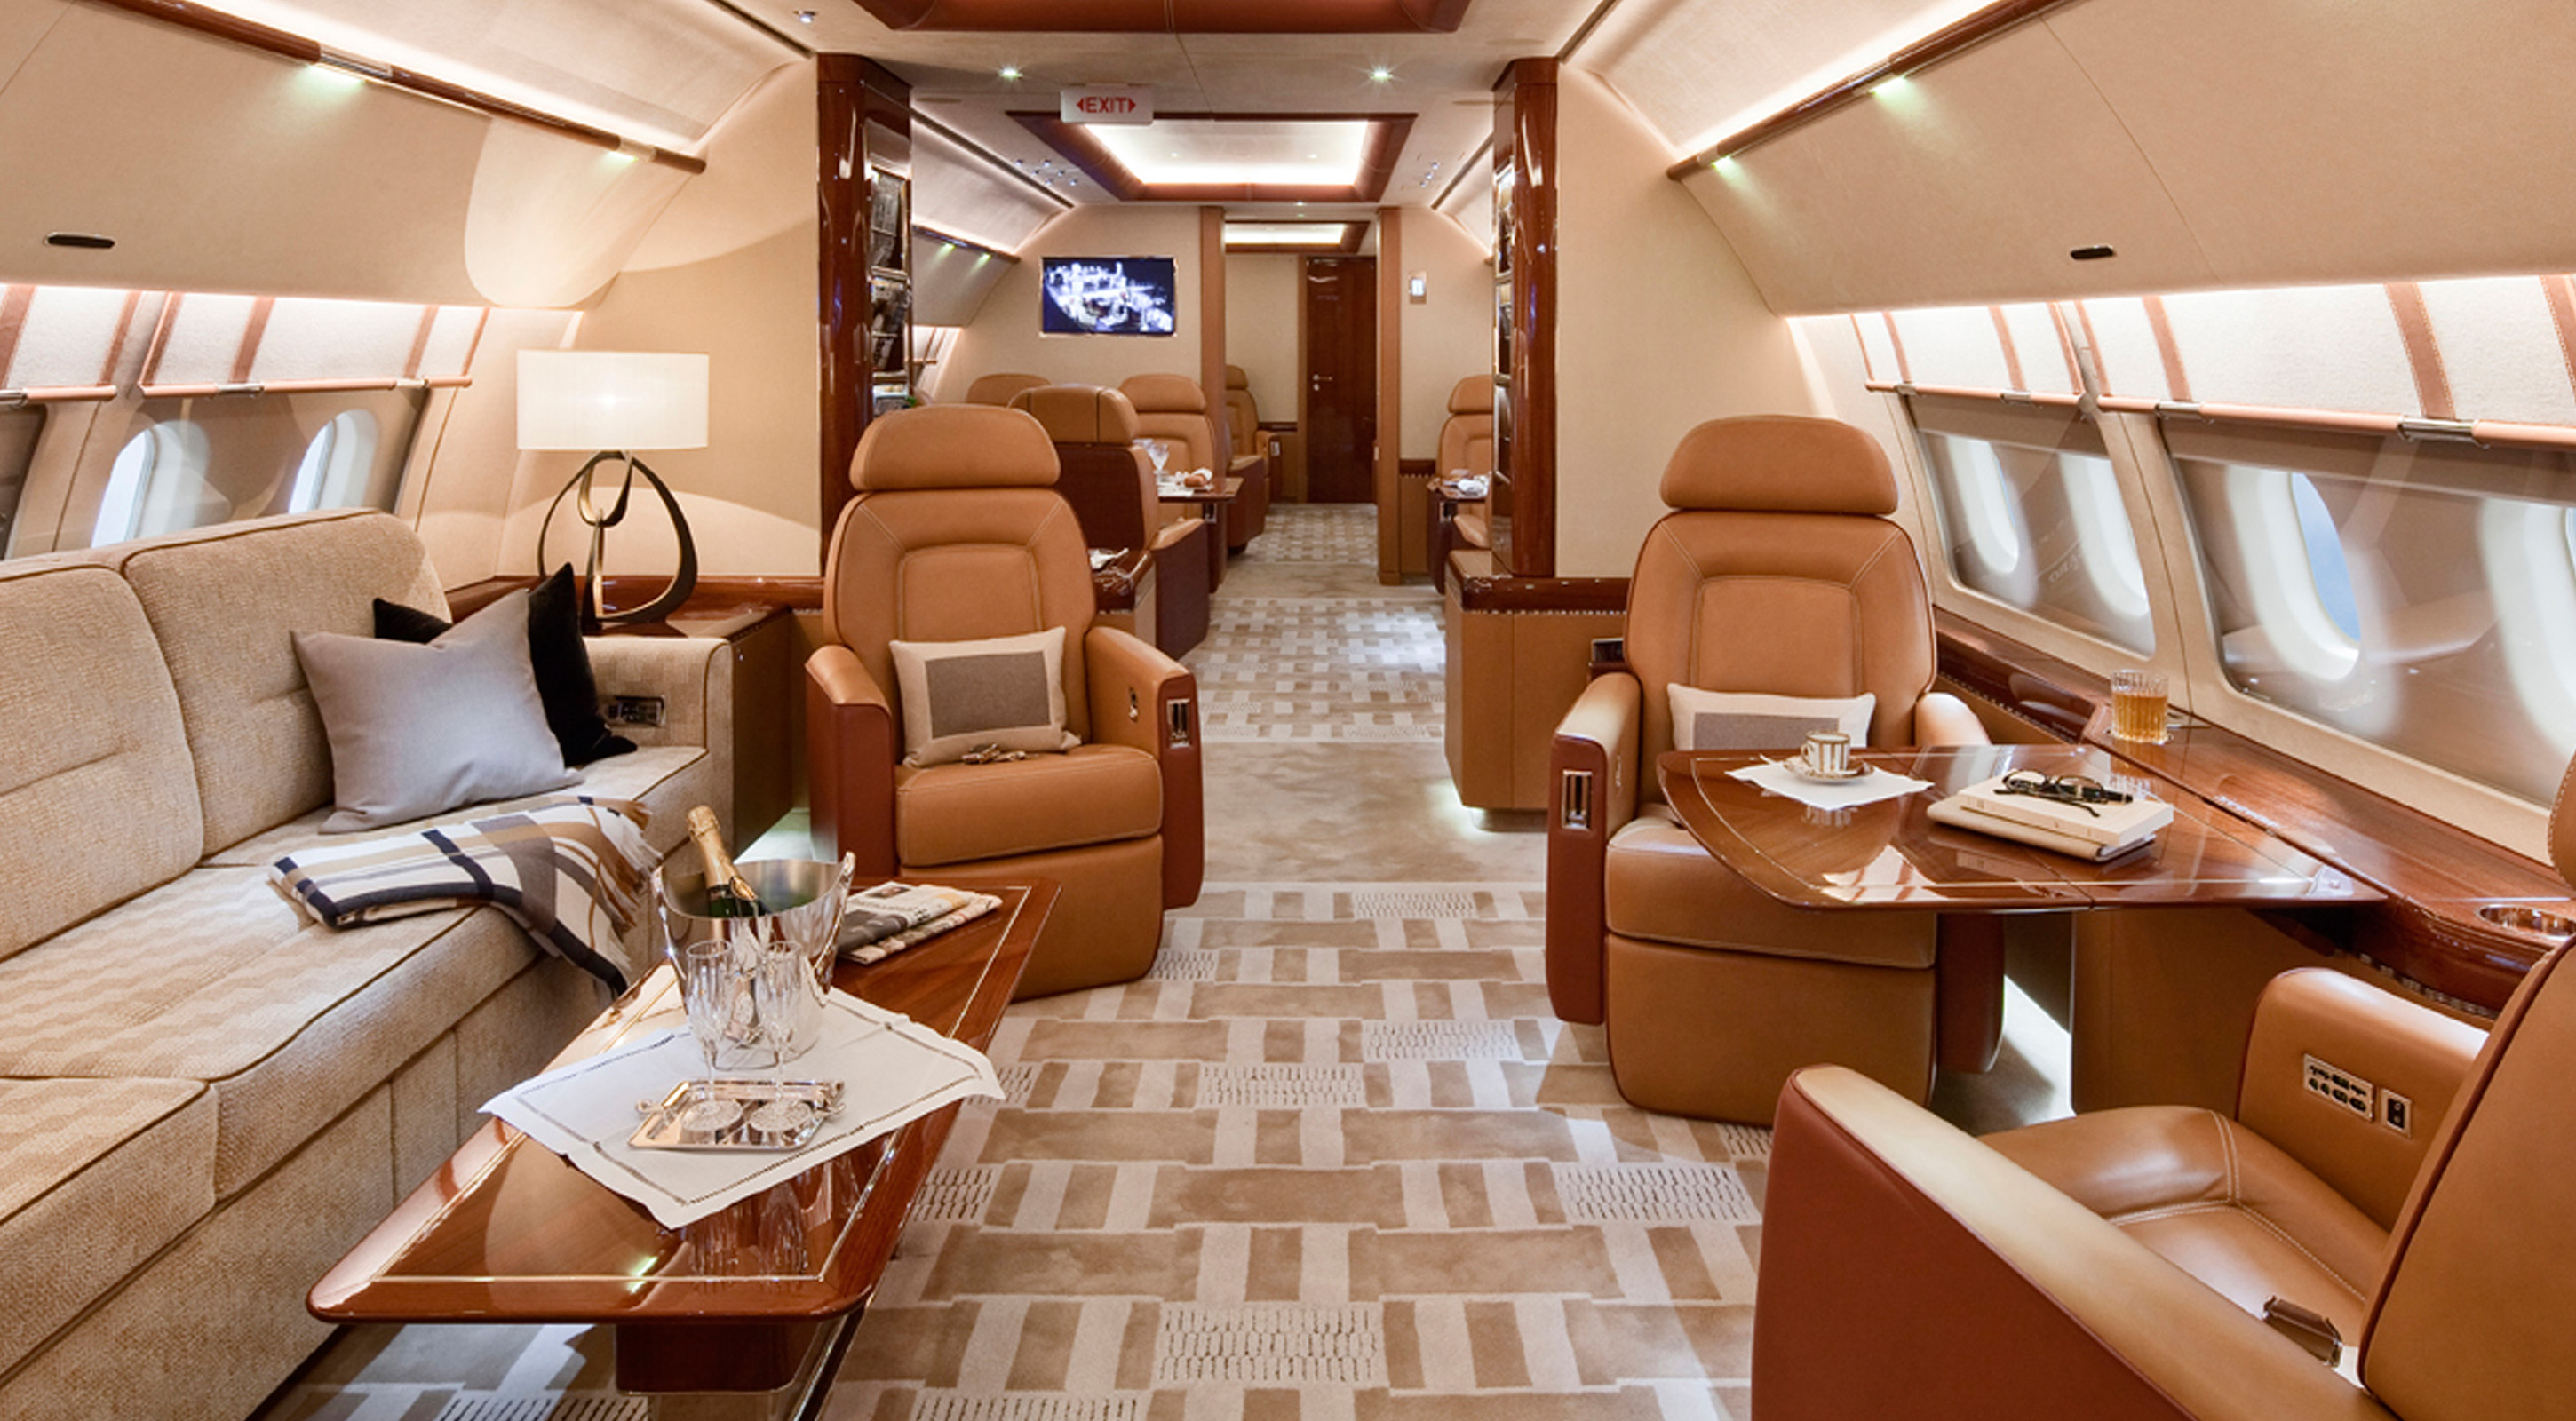 Higher Plane - Business Jet Interiors